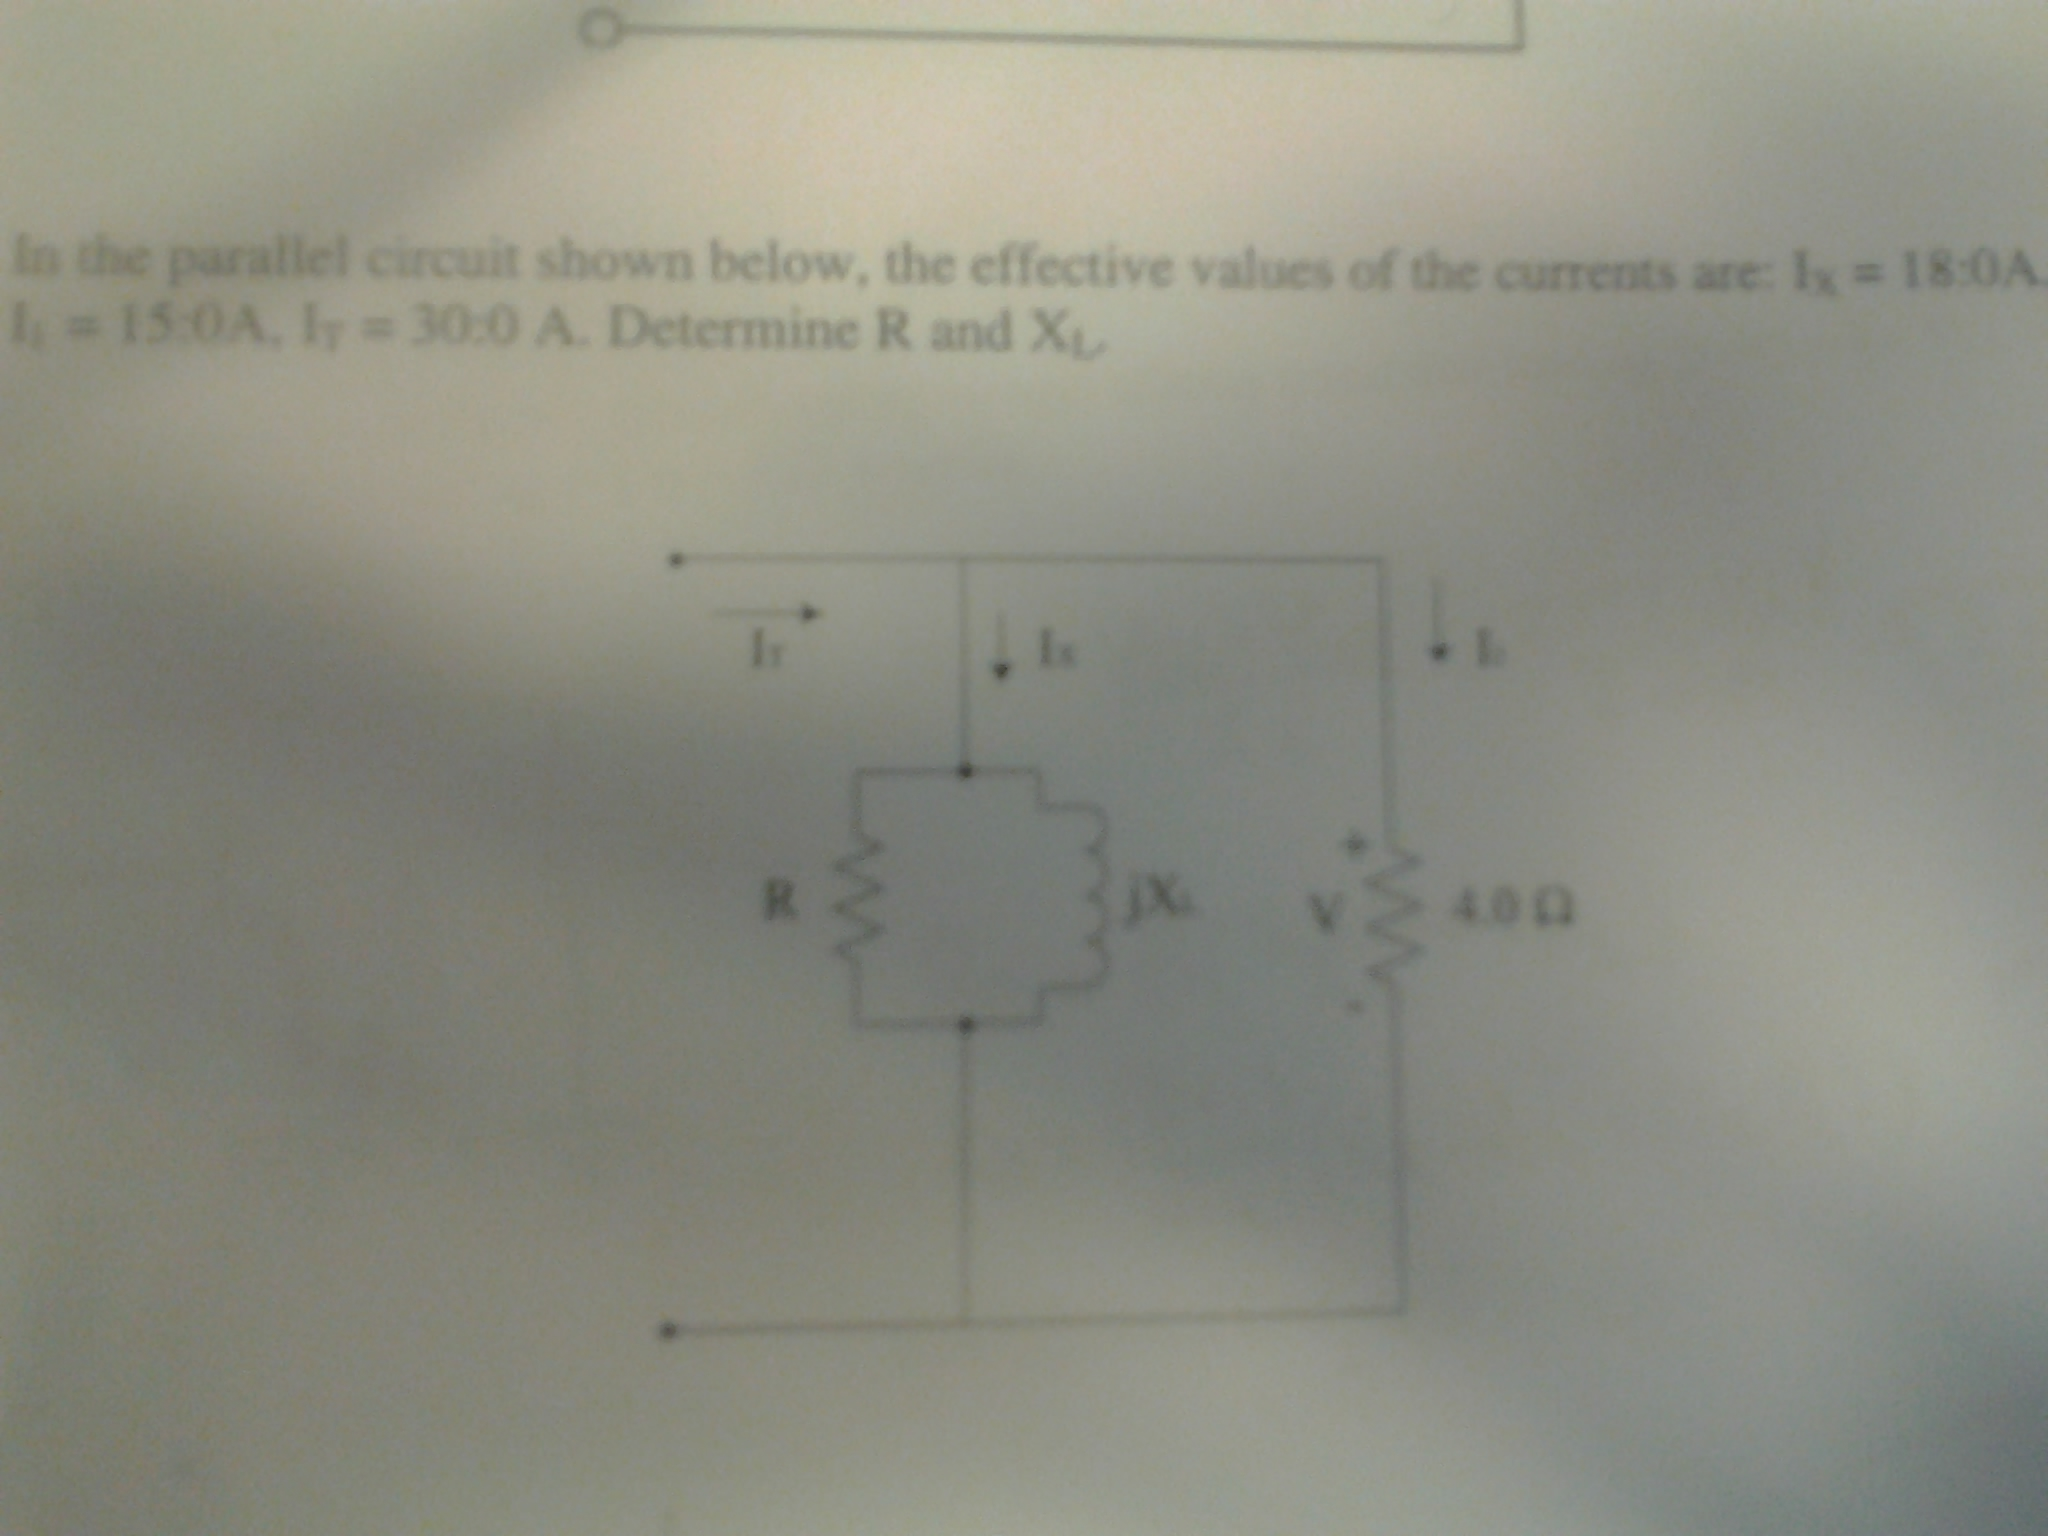 In the parallel circuit shown below, the effective